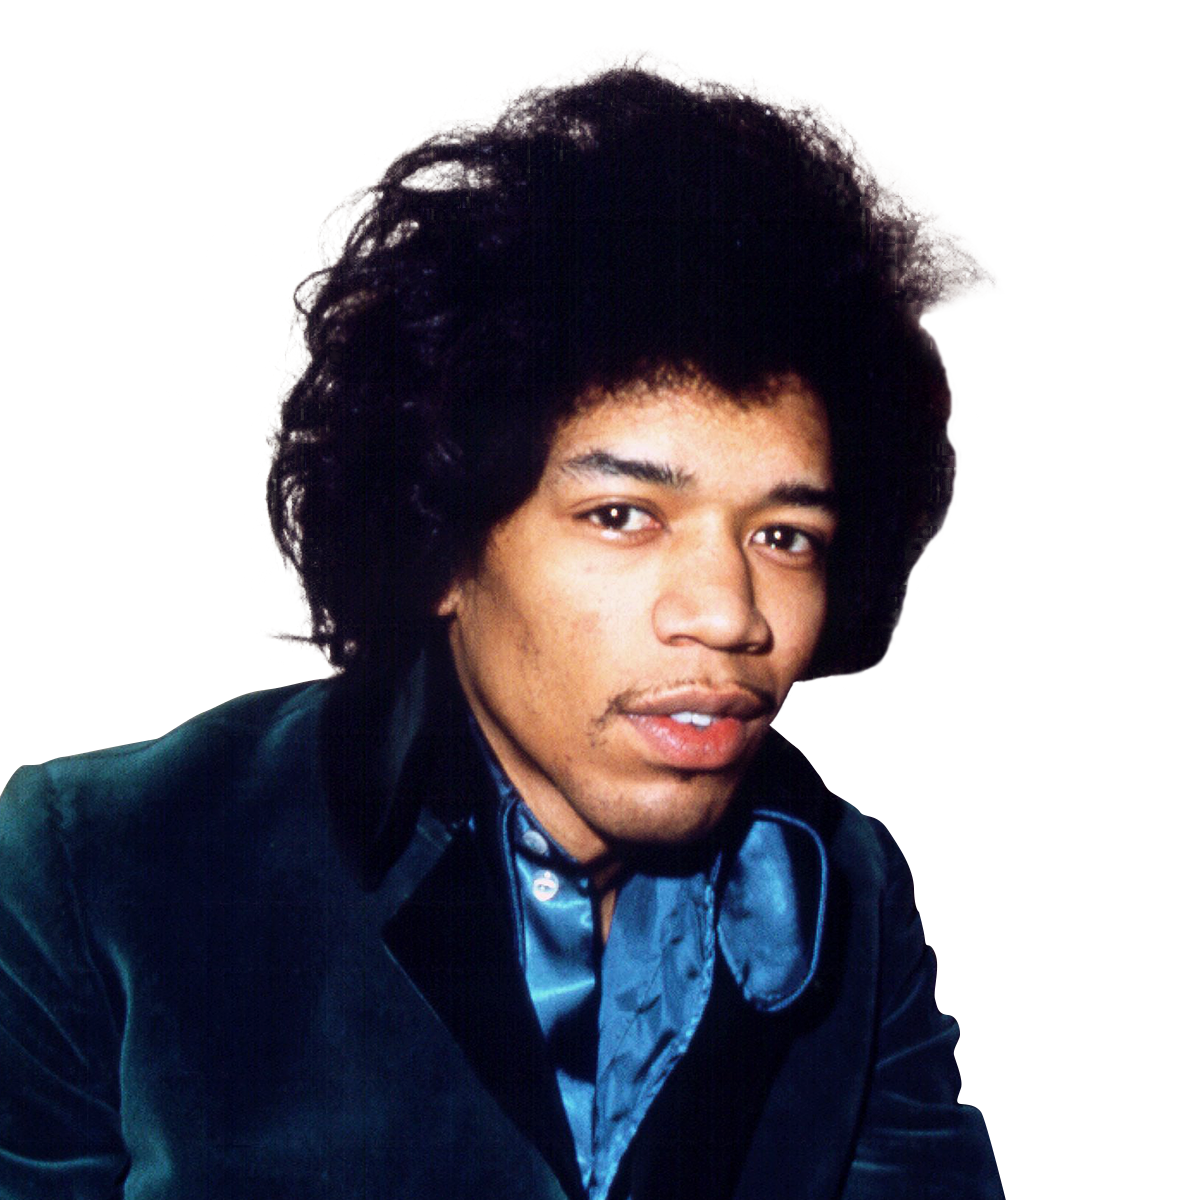 Jimi Hendrix Png (103+ images in Collection) Page 1.